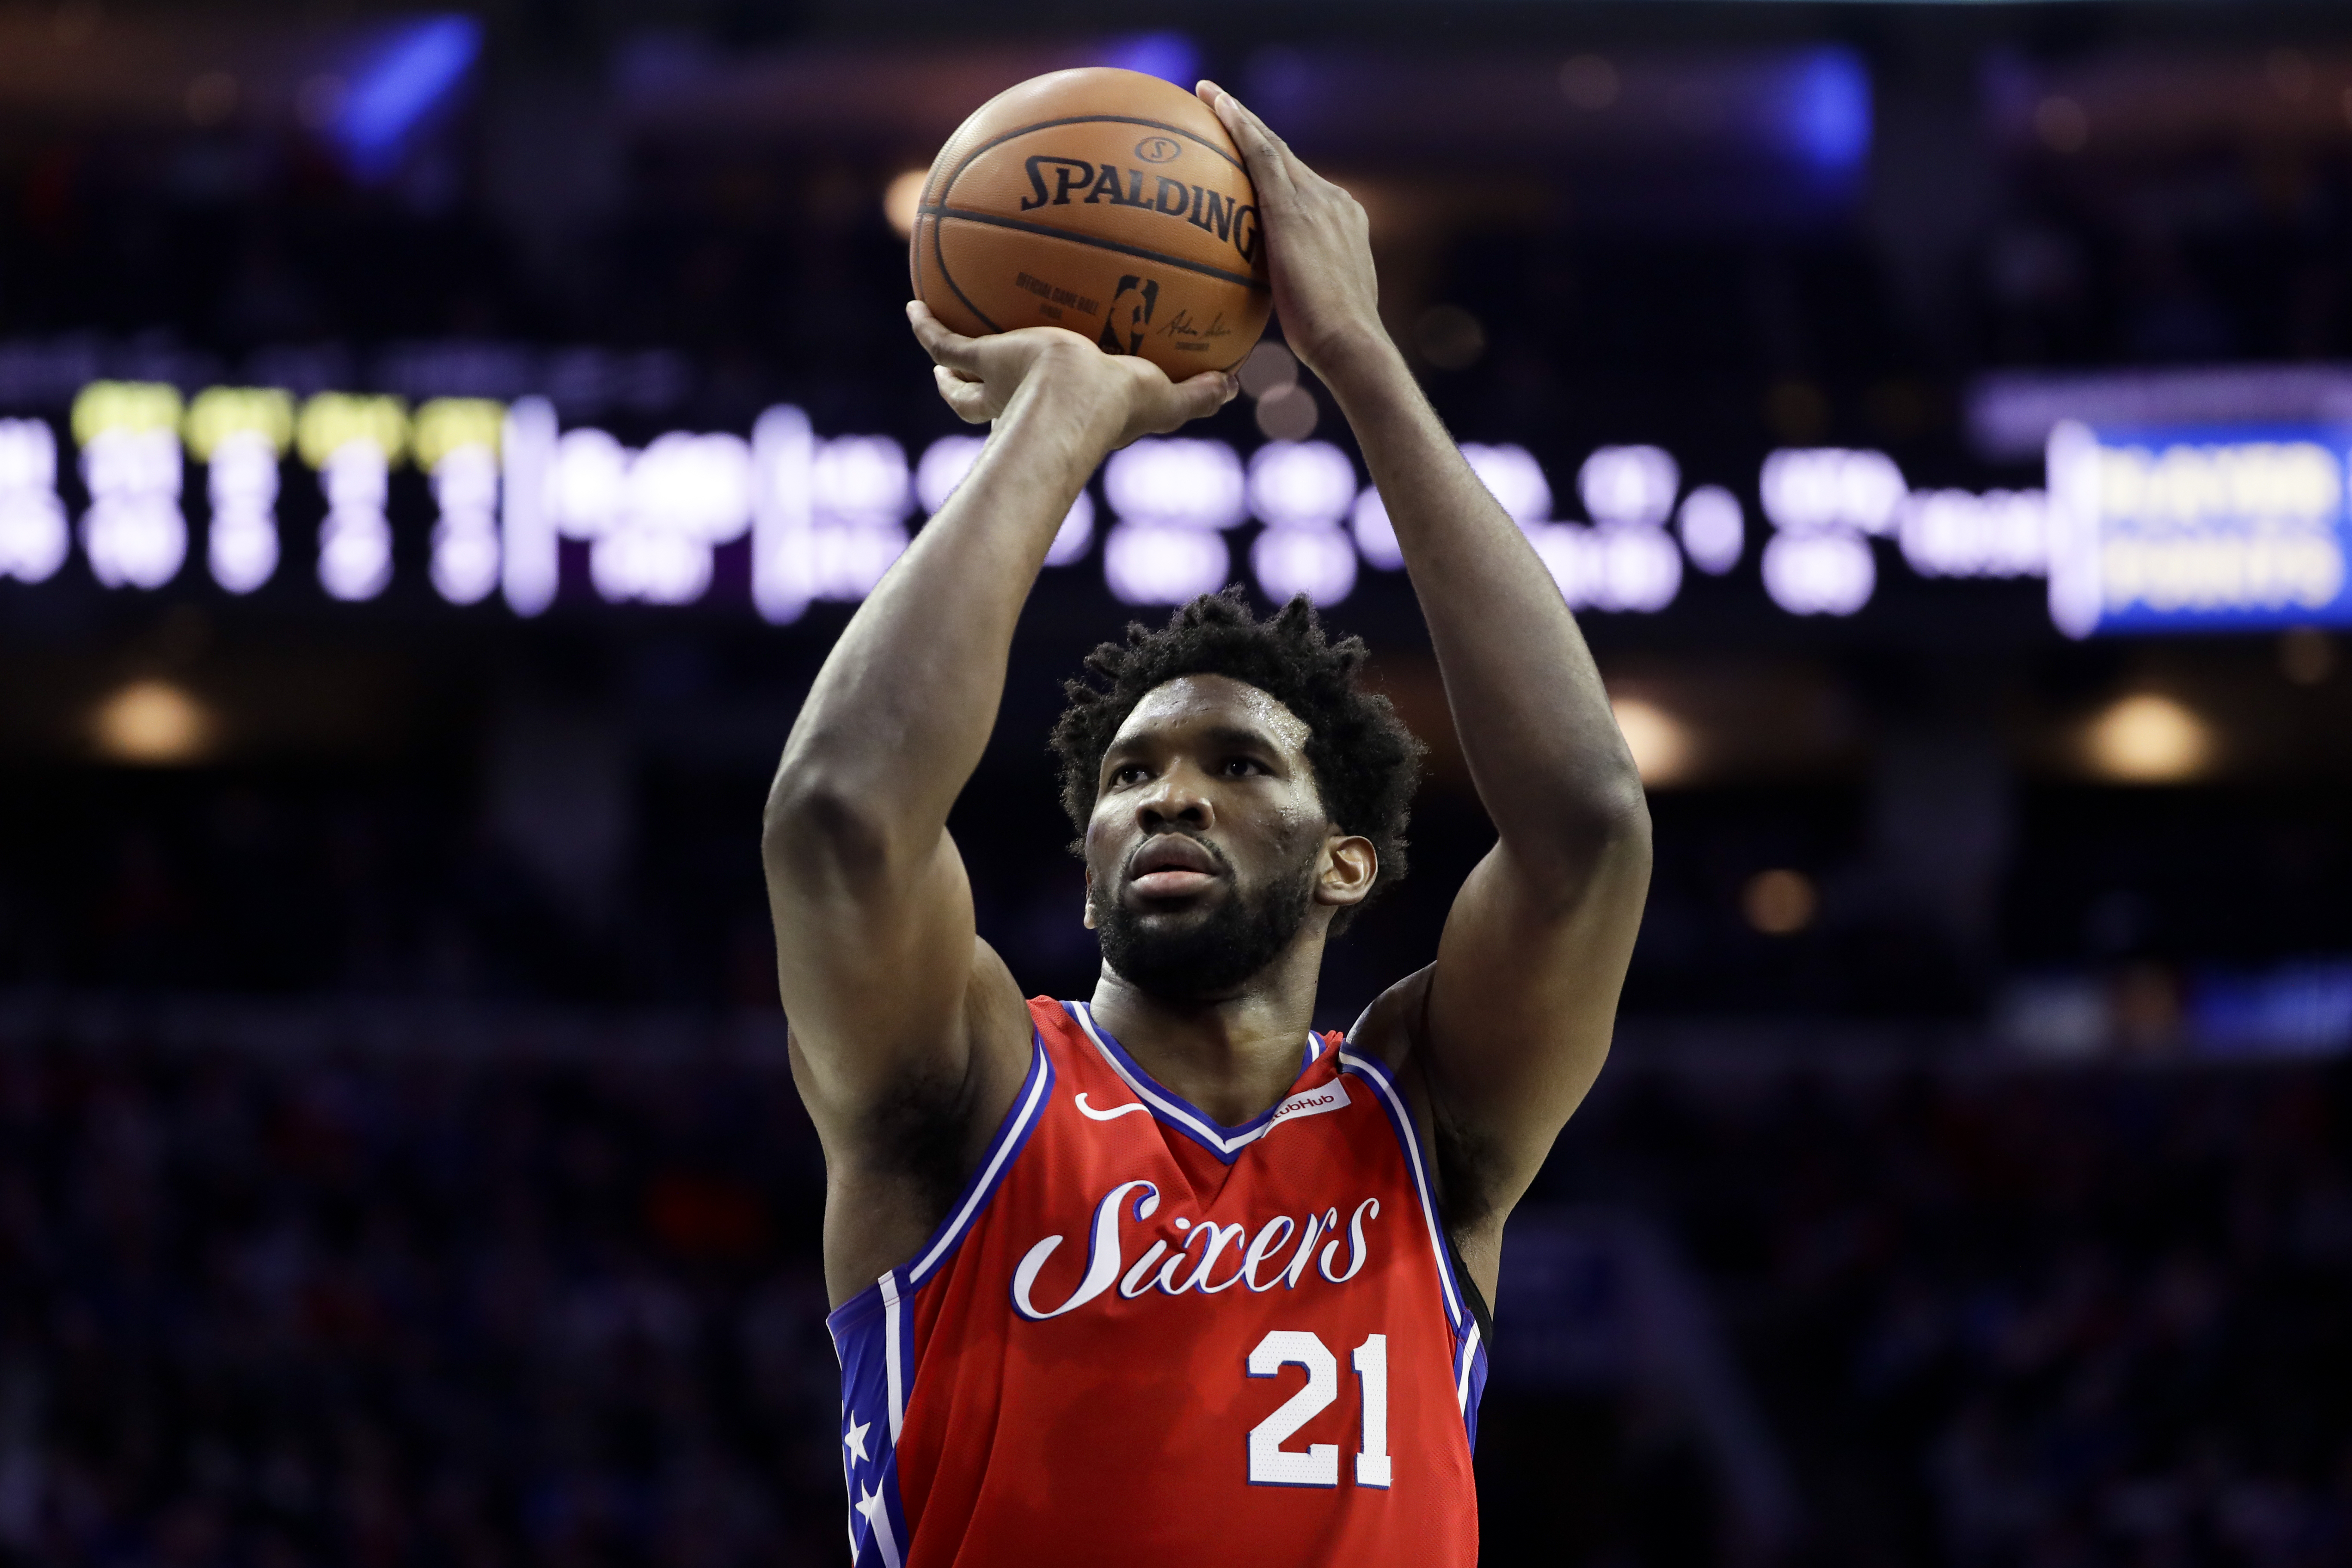 reputable site e999d 16faf Joel Embiid texted injured John Wall to lend support: 'The ...